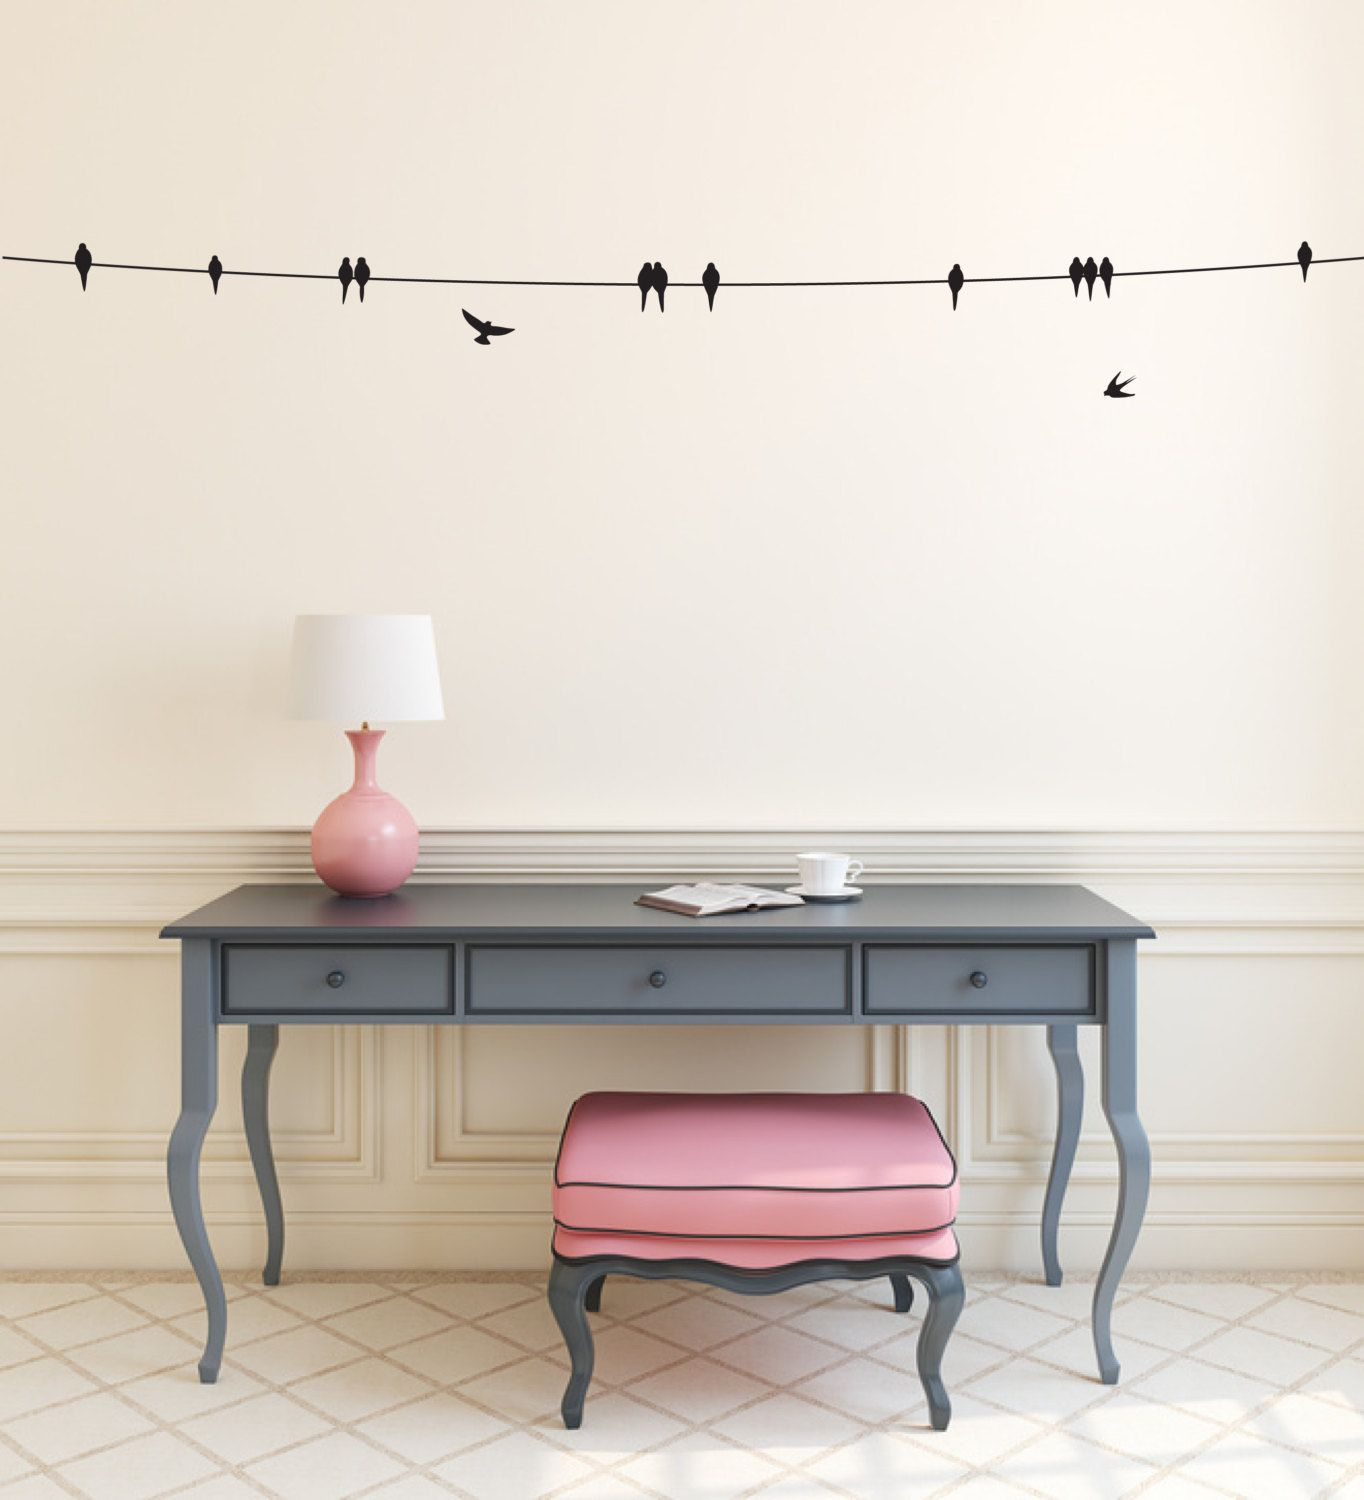 Birds On Wire Wall Sticker - Flying Sitting & Perched Birds within Birds On A Wire Wall Decor (Image 16 of 30)